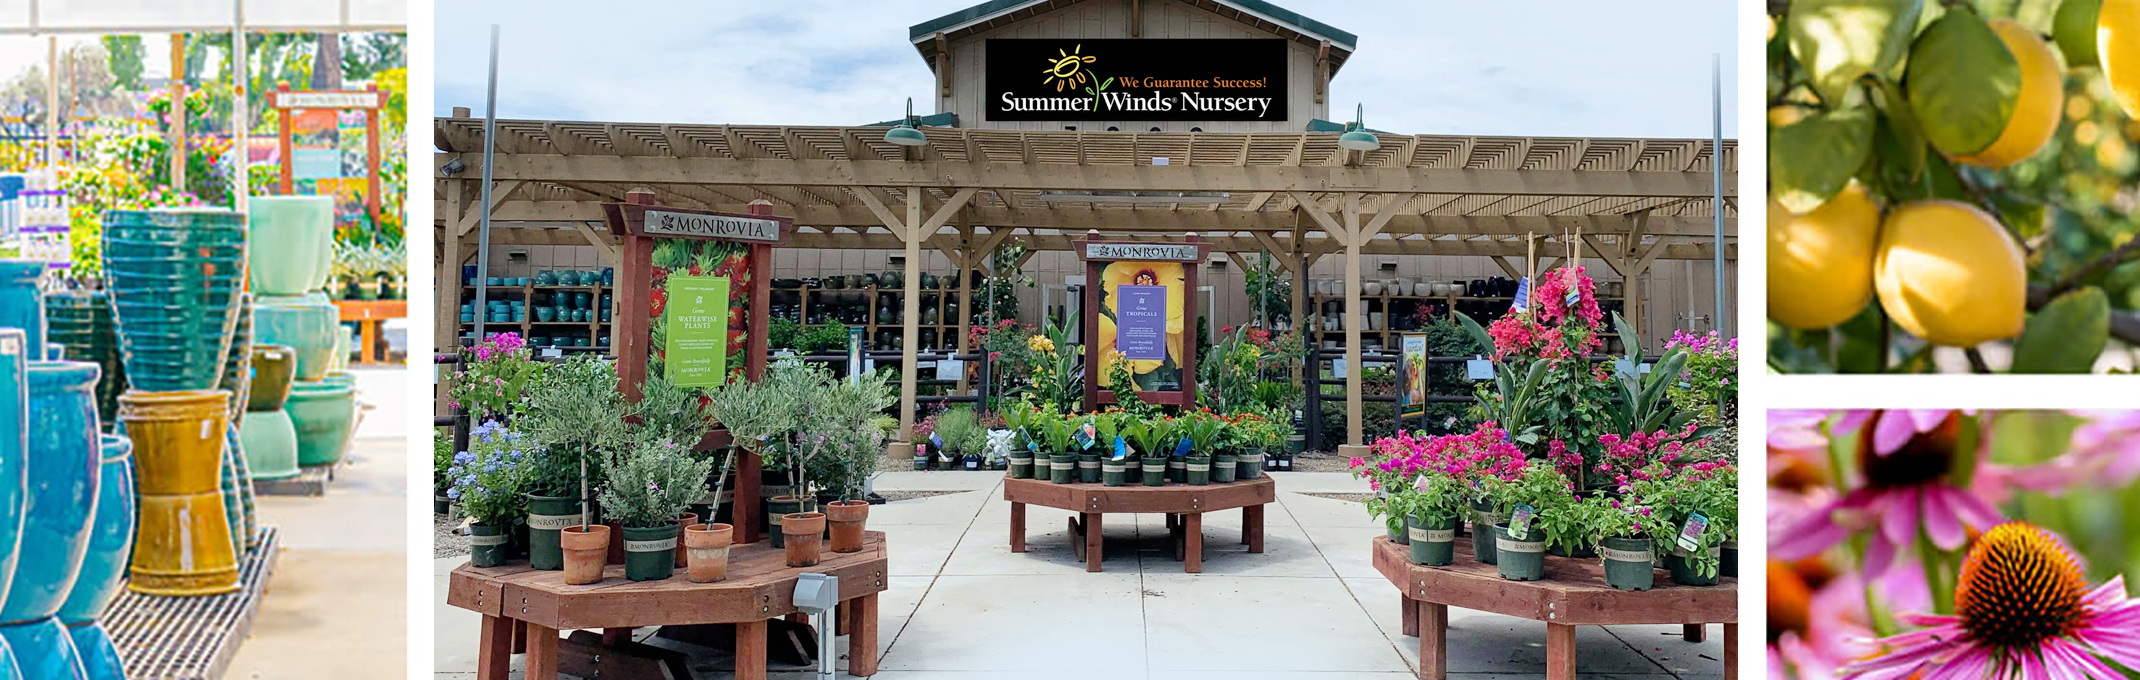 4 images of pottery, dublin summerwinds store front location, lemon tree and echinacea plant